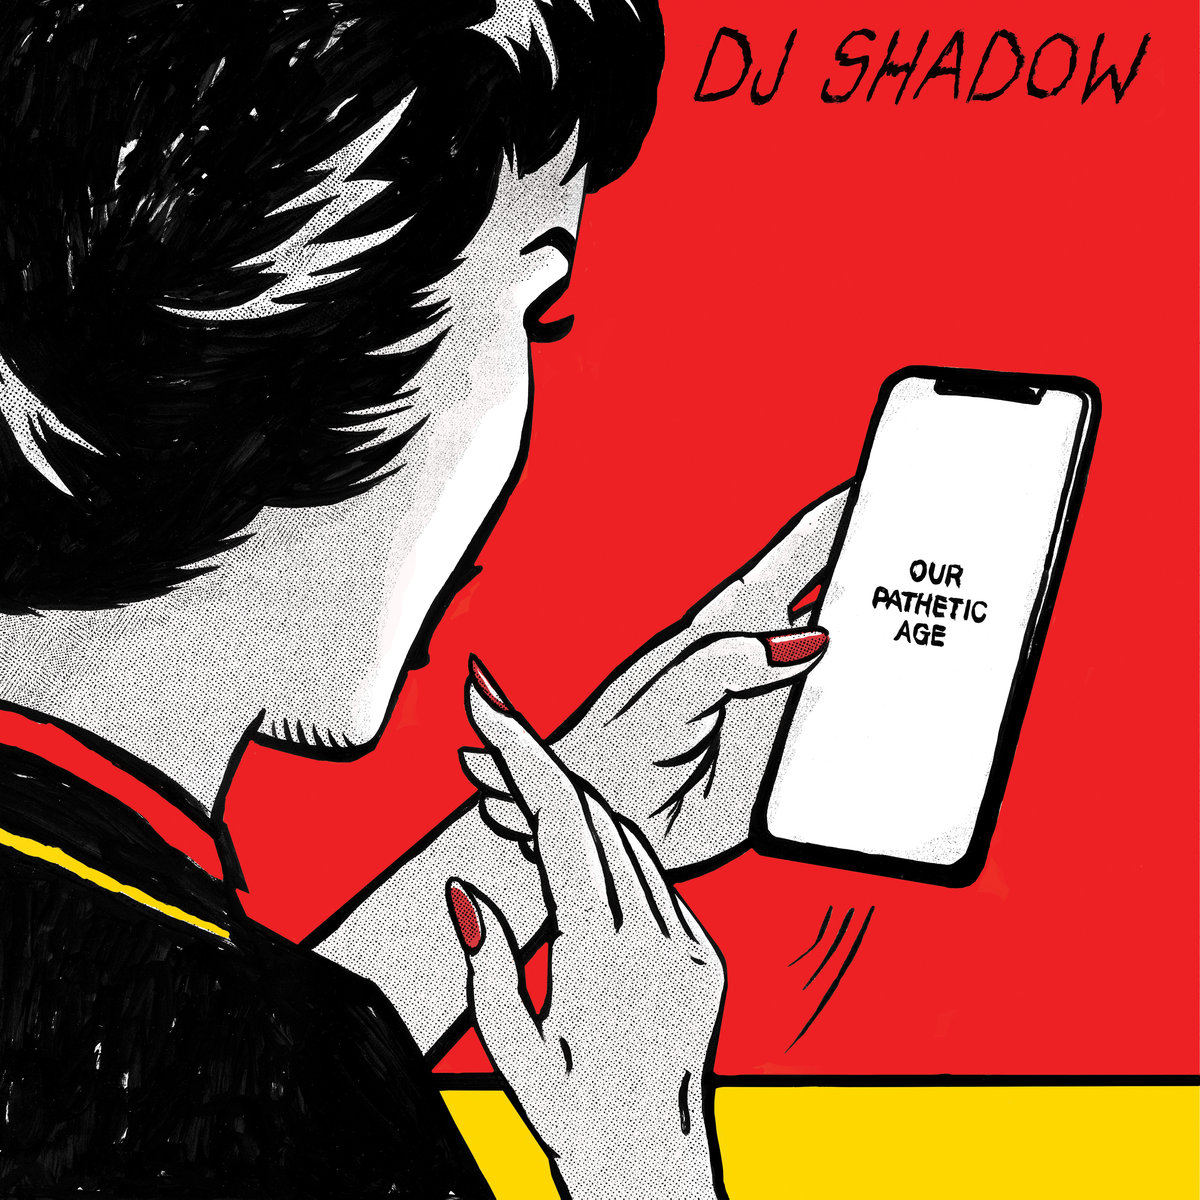 Our Pathetic Age. DJ Shadow